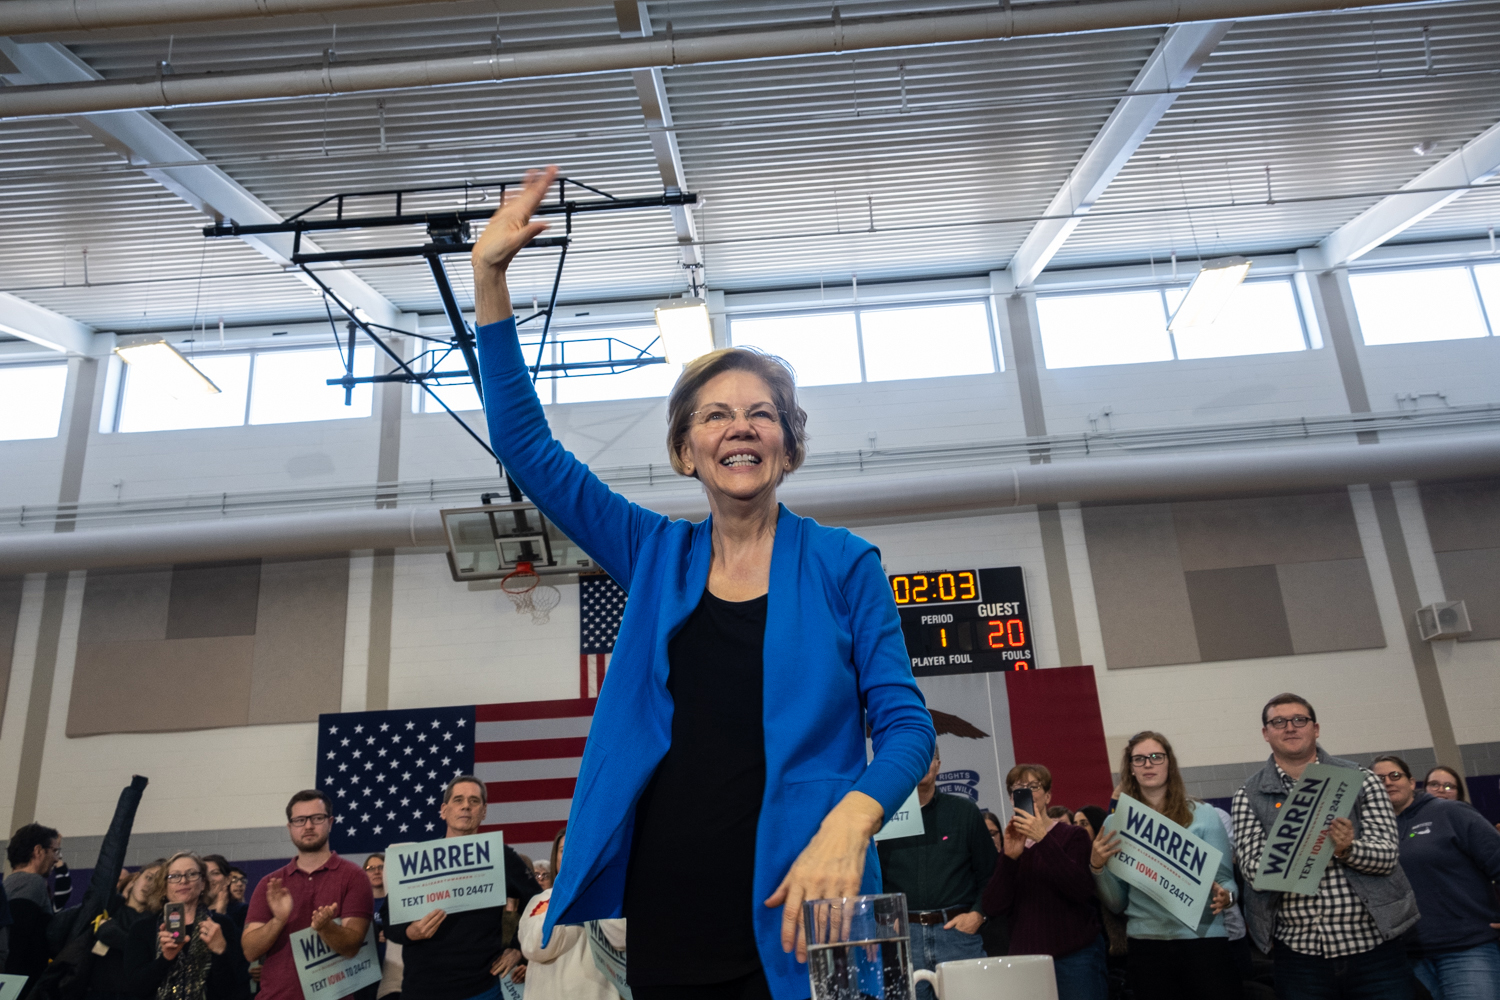 Senator Elizabeth Warren, D-Mass. waves to the audience following a town hall event at North Central Junior High School in North Liberty on Saturday, December 21, 2019.